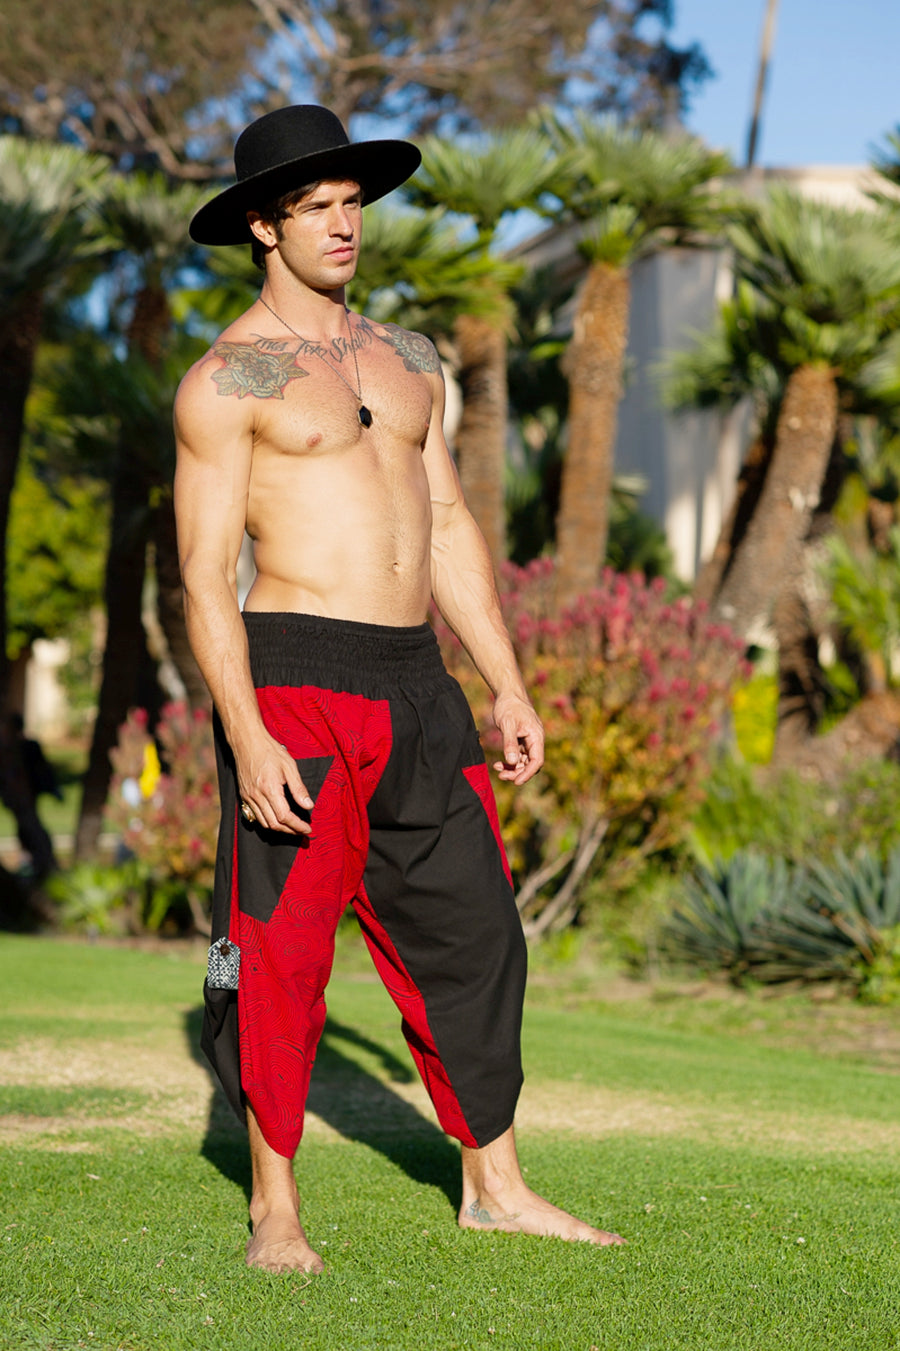 Samurai Elastic Shorts in Red Swirl-The High Thai-The High Thai-Yoga Pants-Harem Pants-Hippie Clothing-San Diego